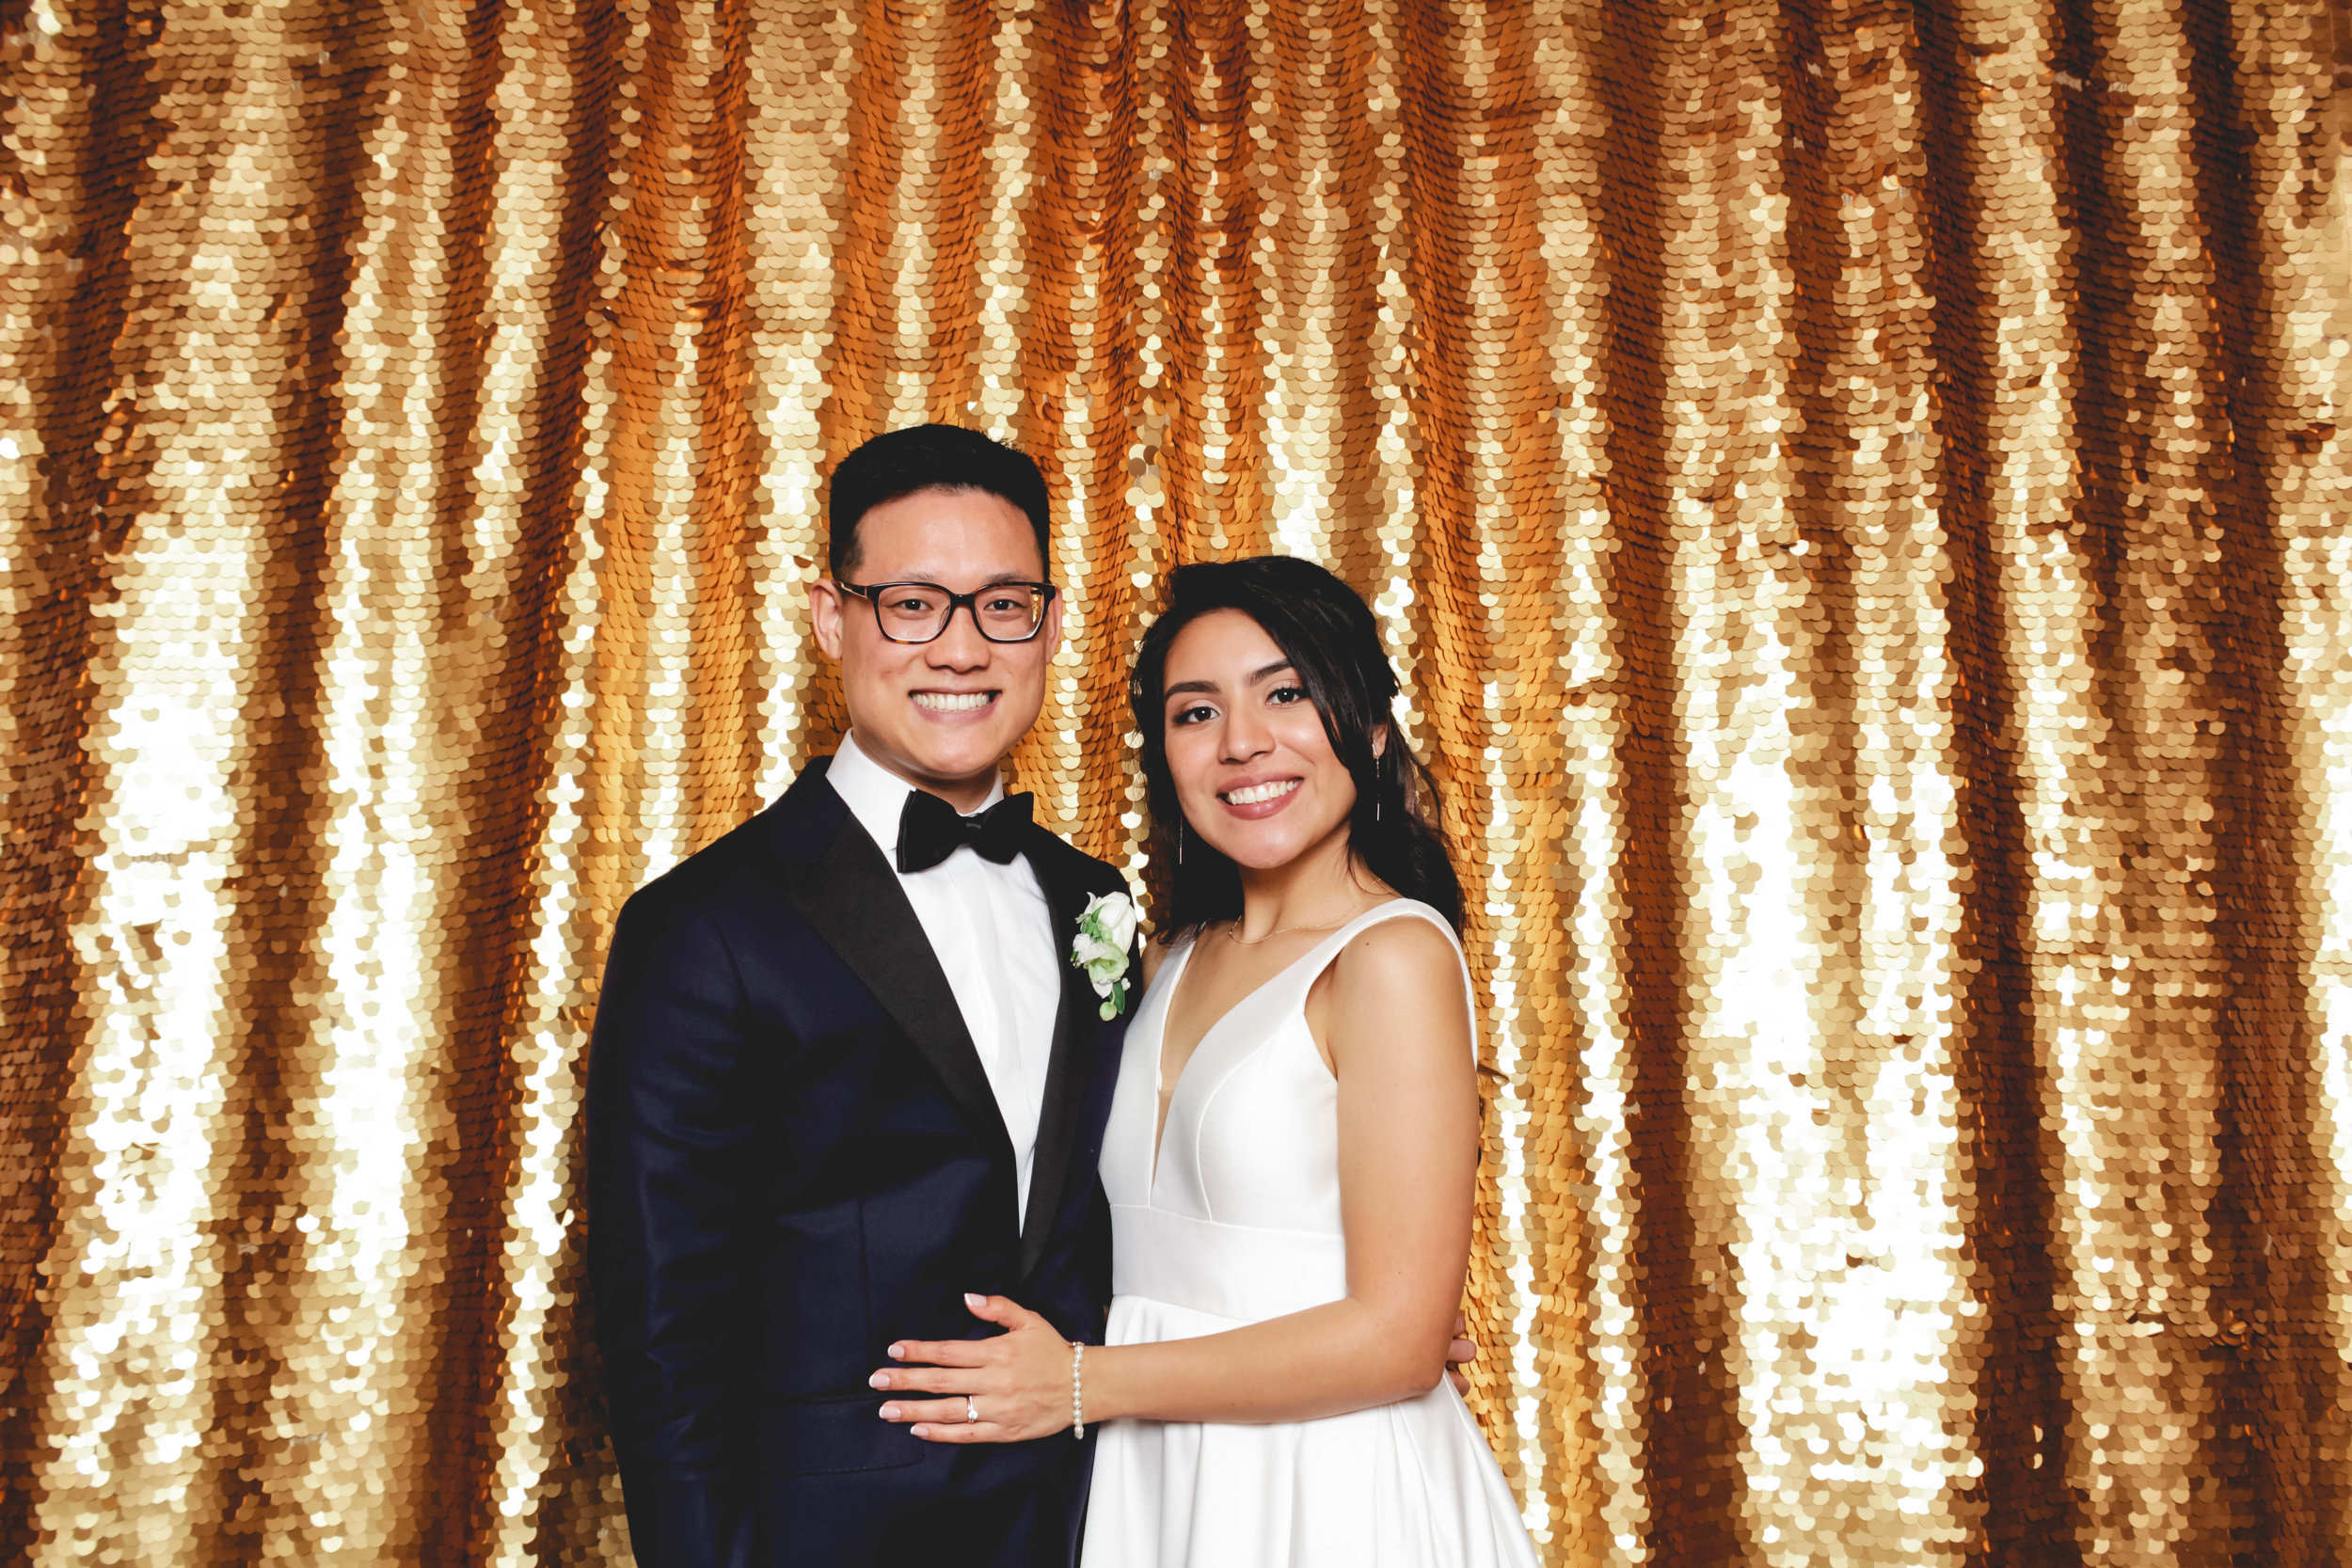 Rebeca & Benjamin | May 31, 2019